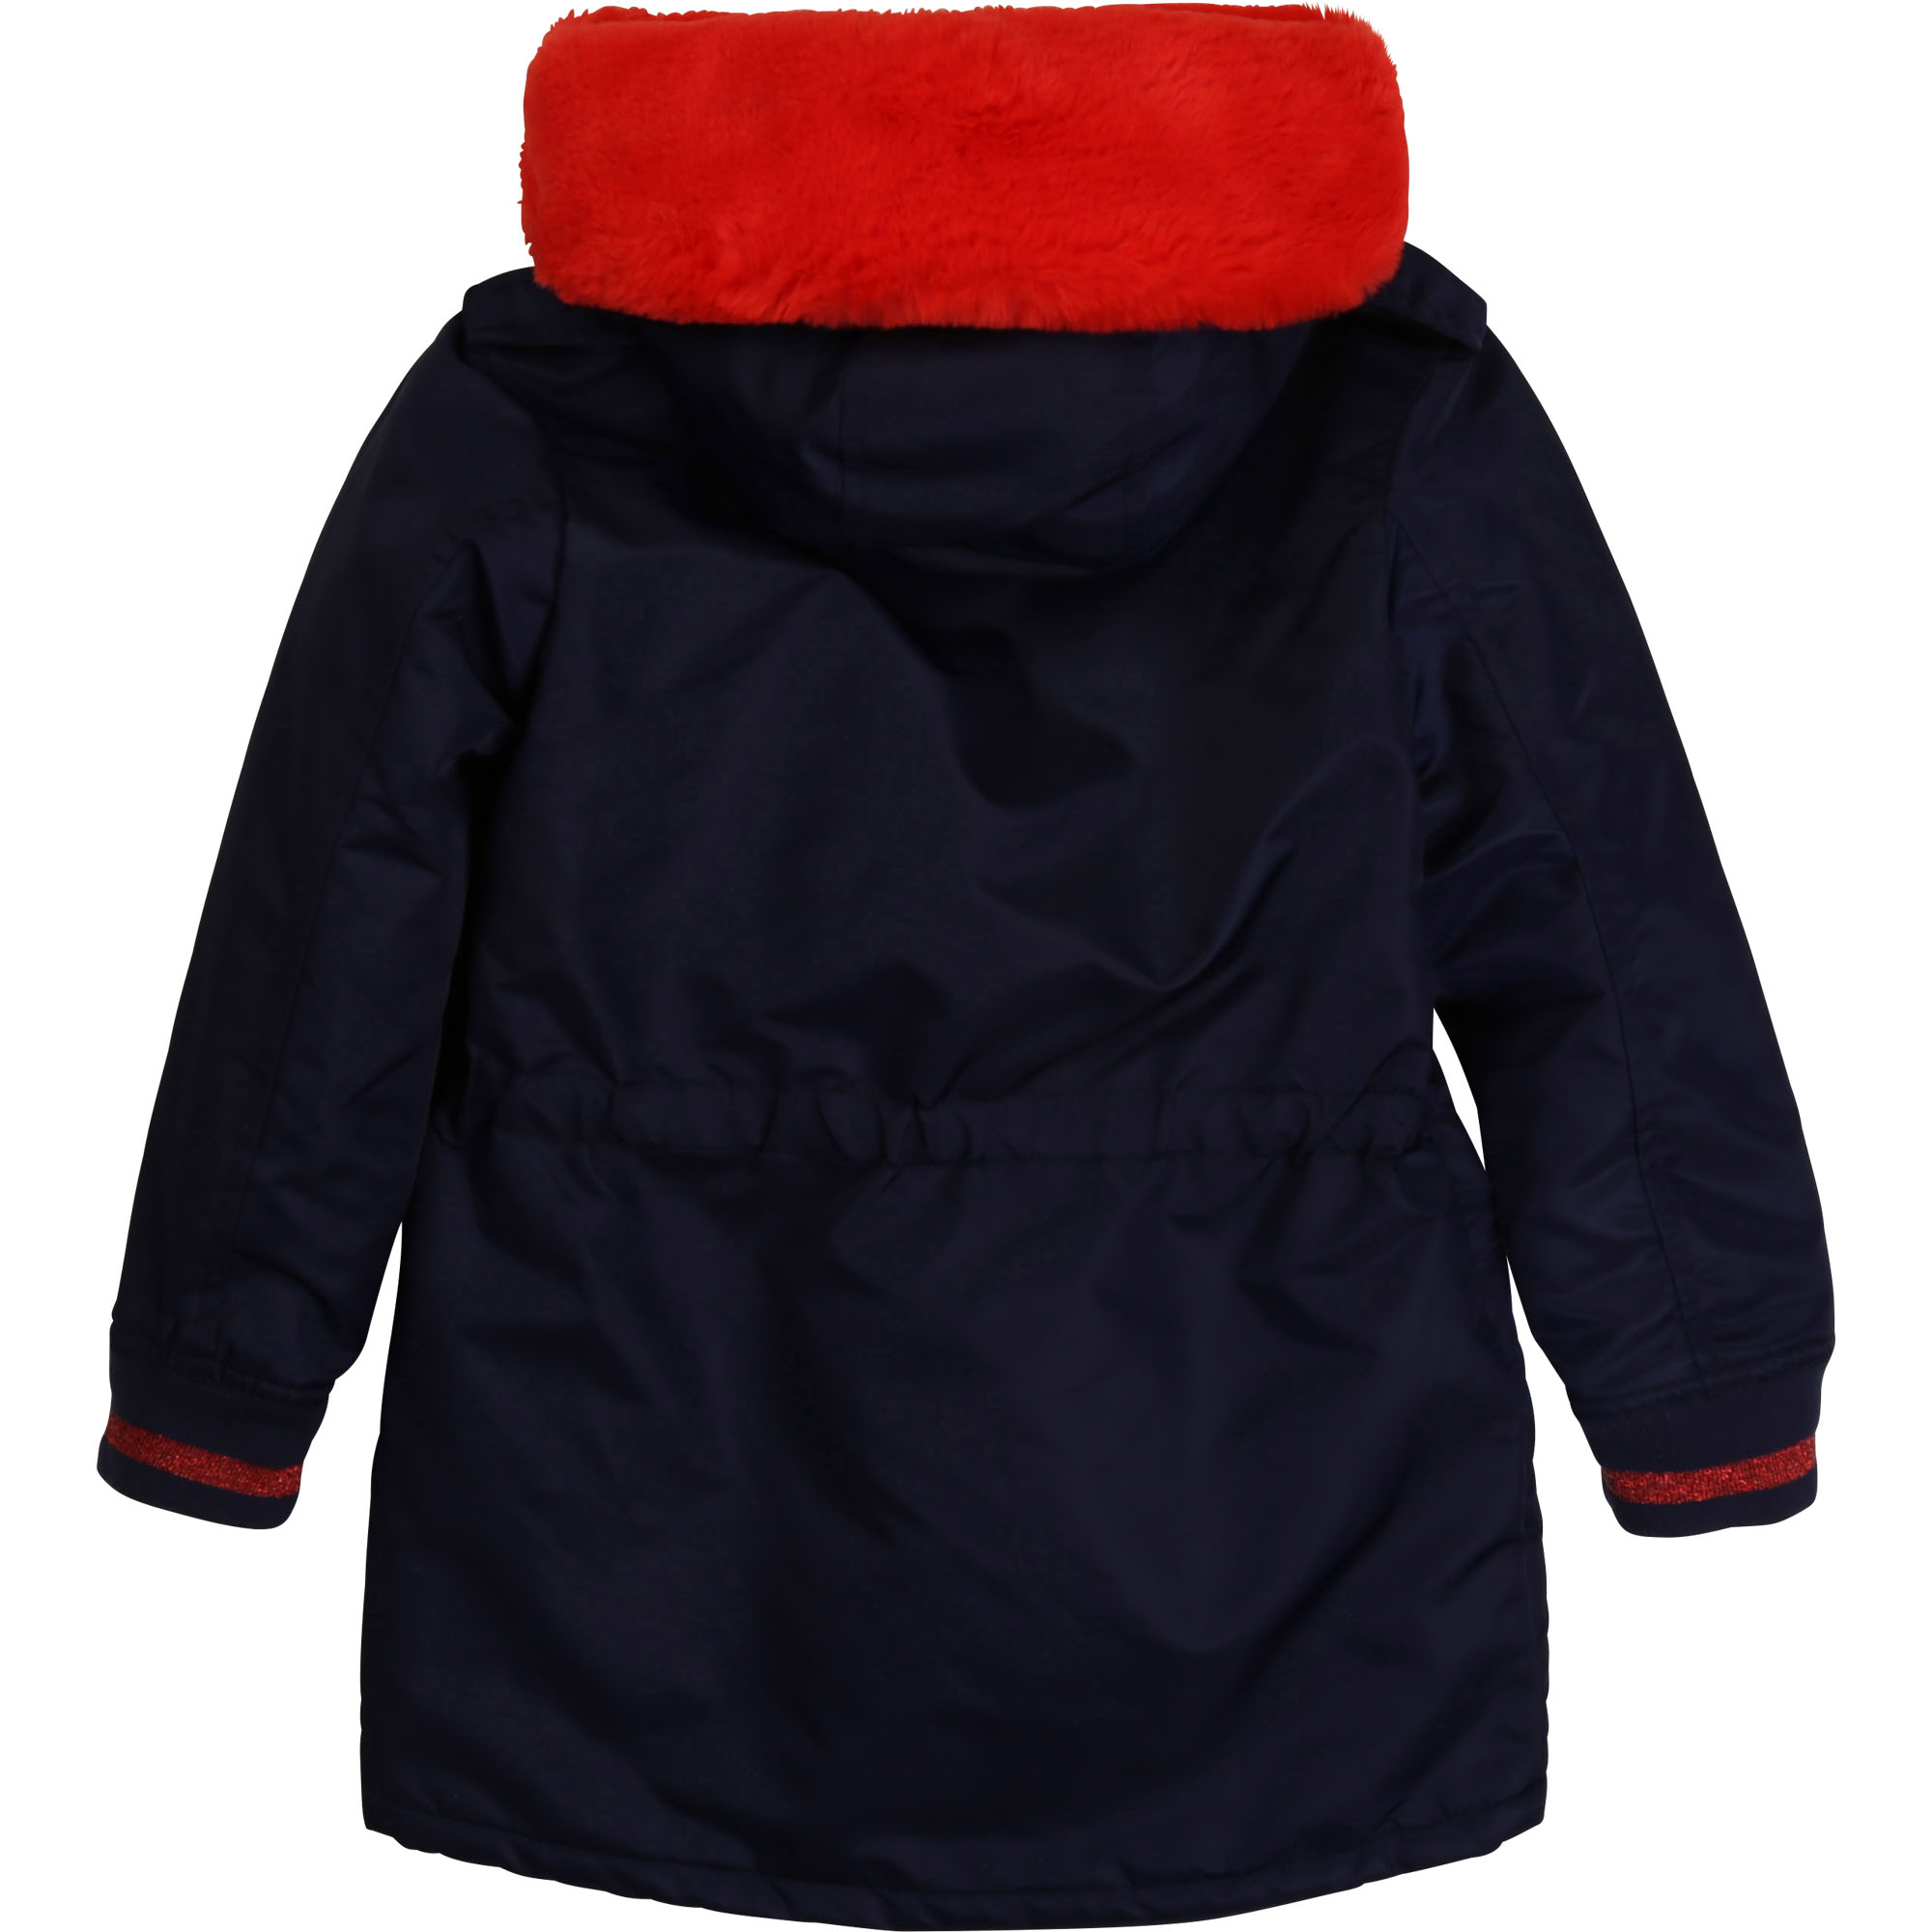 Waterproof gabardine parka THE MARC JACOBS for GIRL